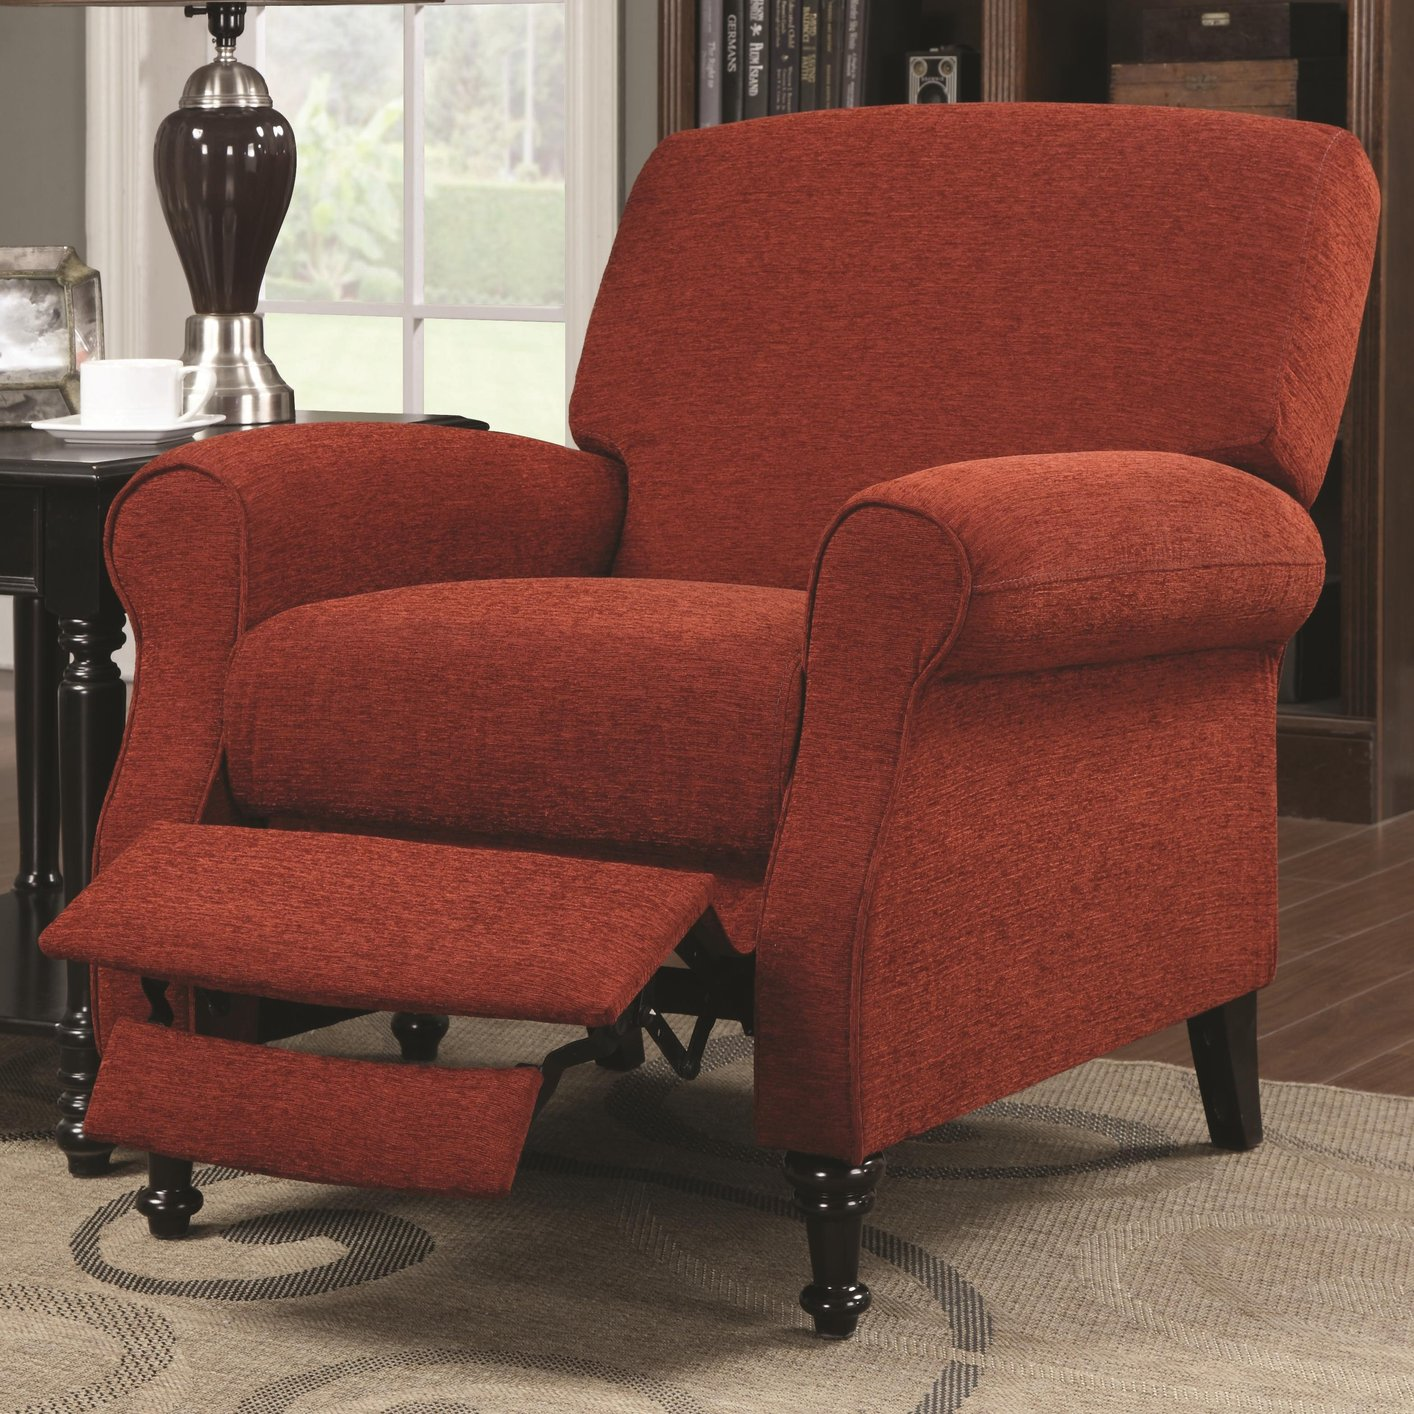 Red Fabric Reclining Chair & Red Fabric Reclining Chair - Steal-A-Sofa Furniture Outlet Los ... islam-shia.org